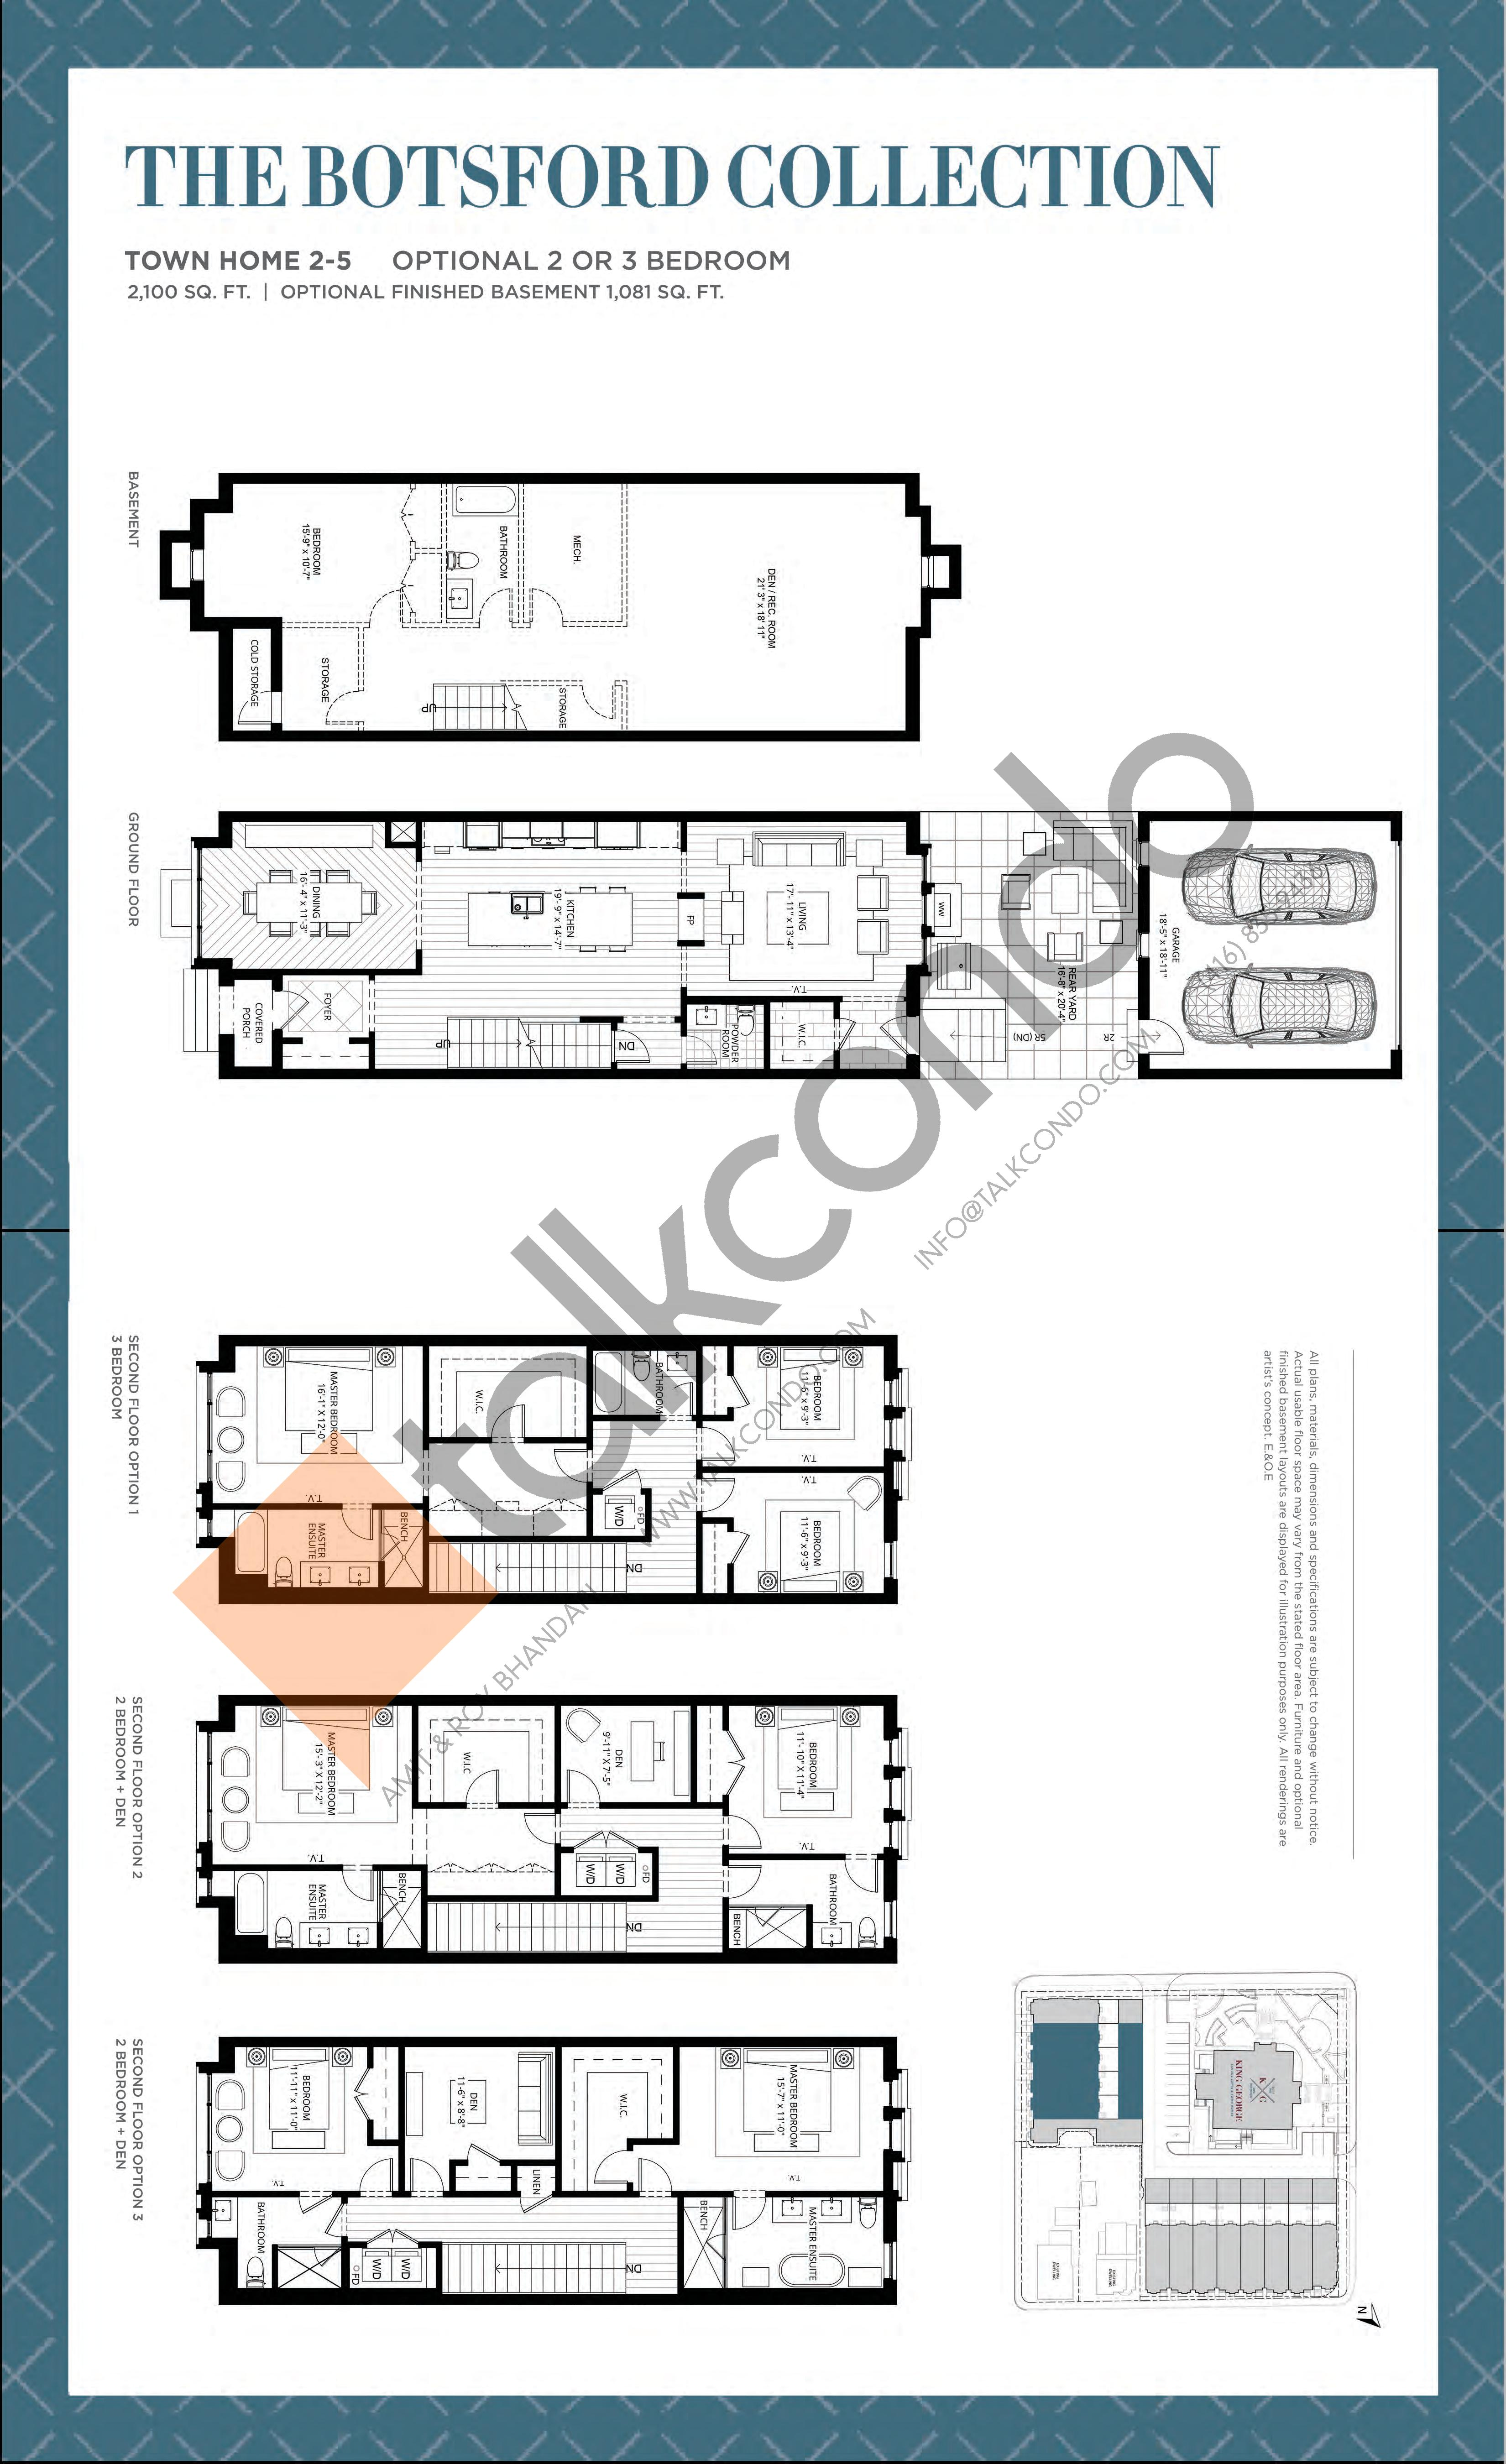 Town Home 2-5 - The Botsford Collection Floor Plan at King George School Lofts & Town Homes - 2100 sq.ft